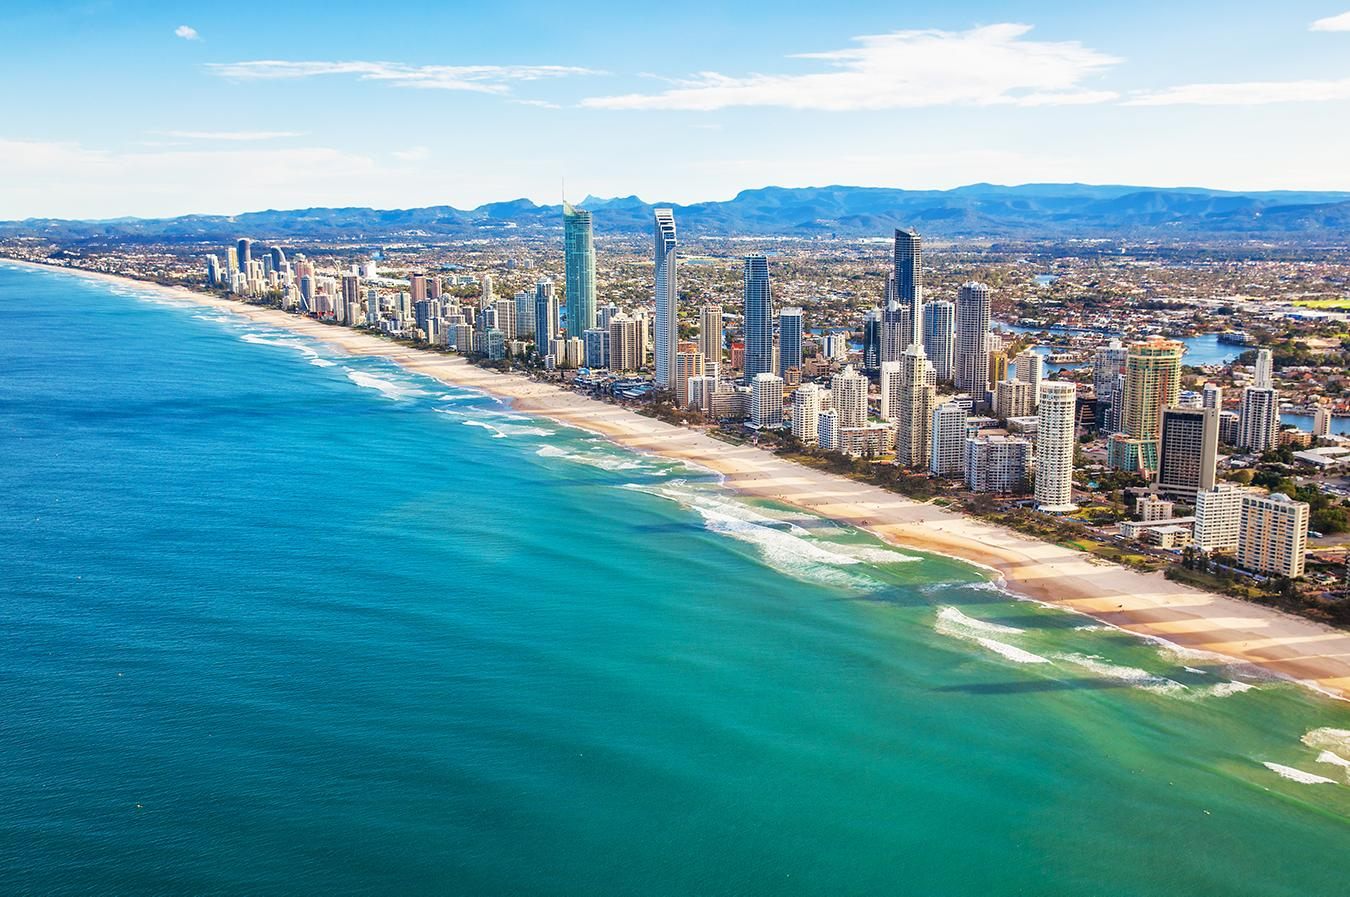 Views of Queensland's coastline with buildings and beaches